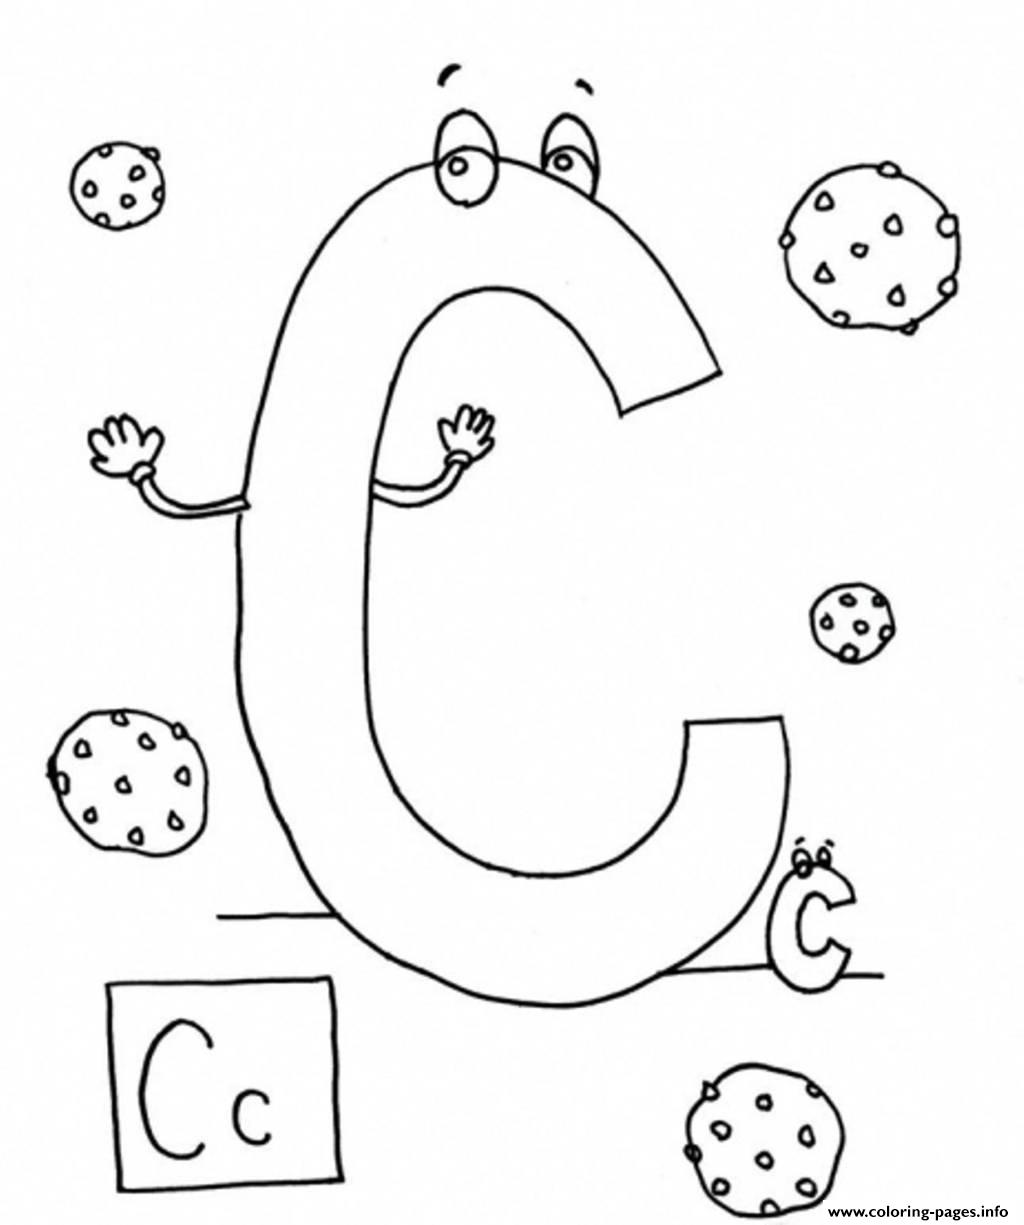 Cookie Coloring Pages - GetColoringPages.com | 1225x1024